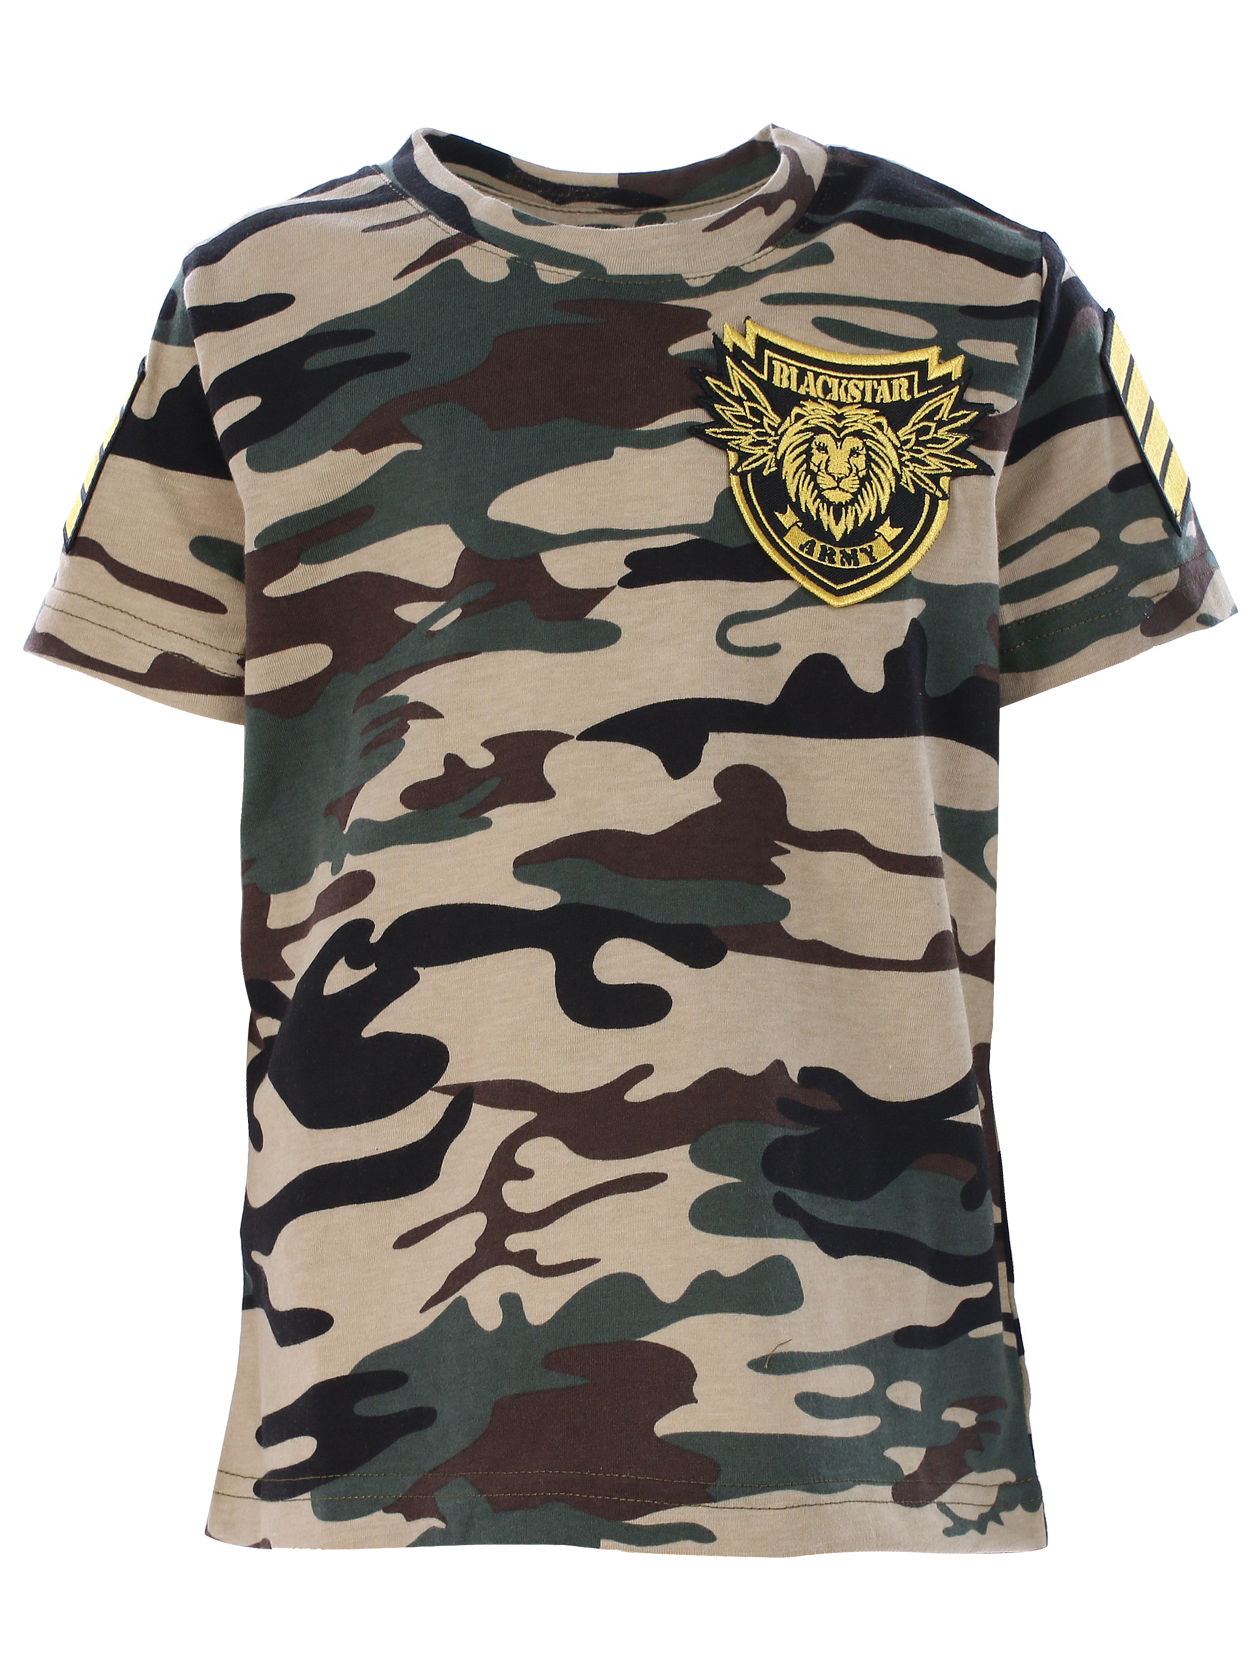 Kids t-shirt Black Star ArmyKids t-shirt by Black Star Wear. Straight fit, 100% cotton, o-neck. Big patch with lions head and Black Star Army lettering on the chest, chevrons on sleeves. These t-shirt is made of soft-touch natural cotton. Avaliable in camouflage.<br><br>size: 1-2 years<br>color: Camouflage<br>gender: unisex